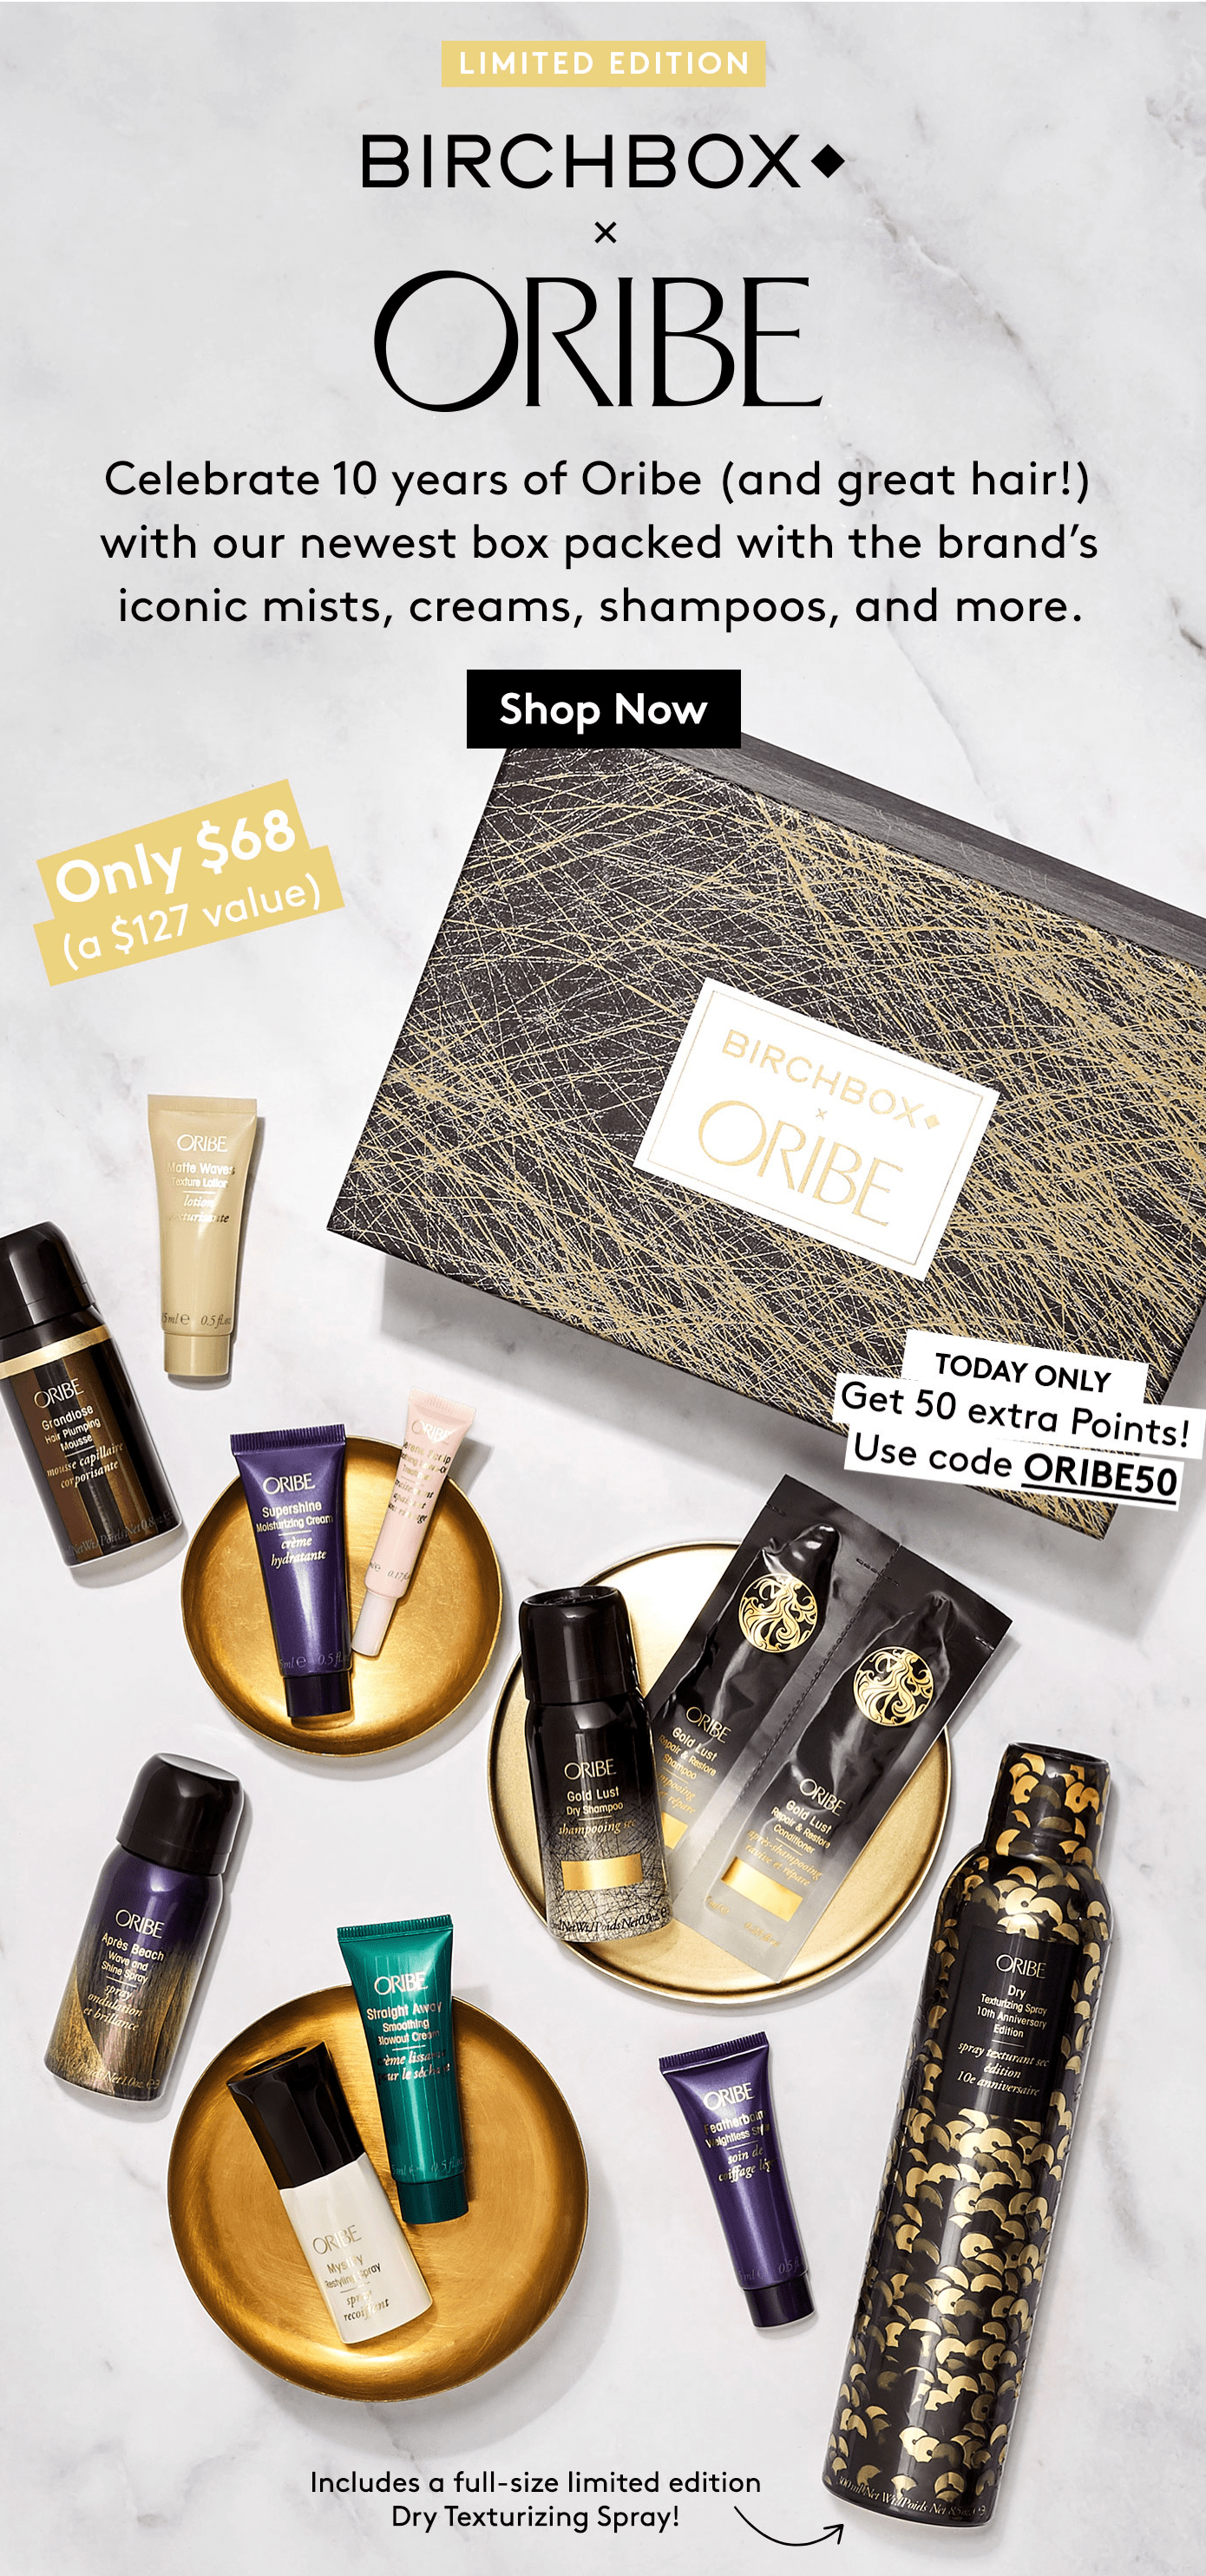 Oribe x Birchbox Limited Edition Box Available Now + Coupon!